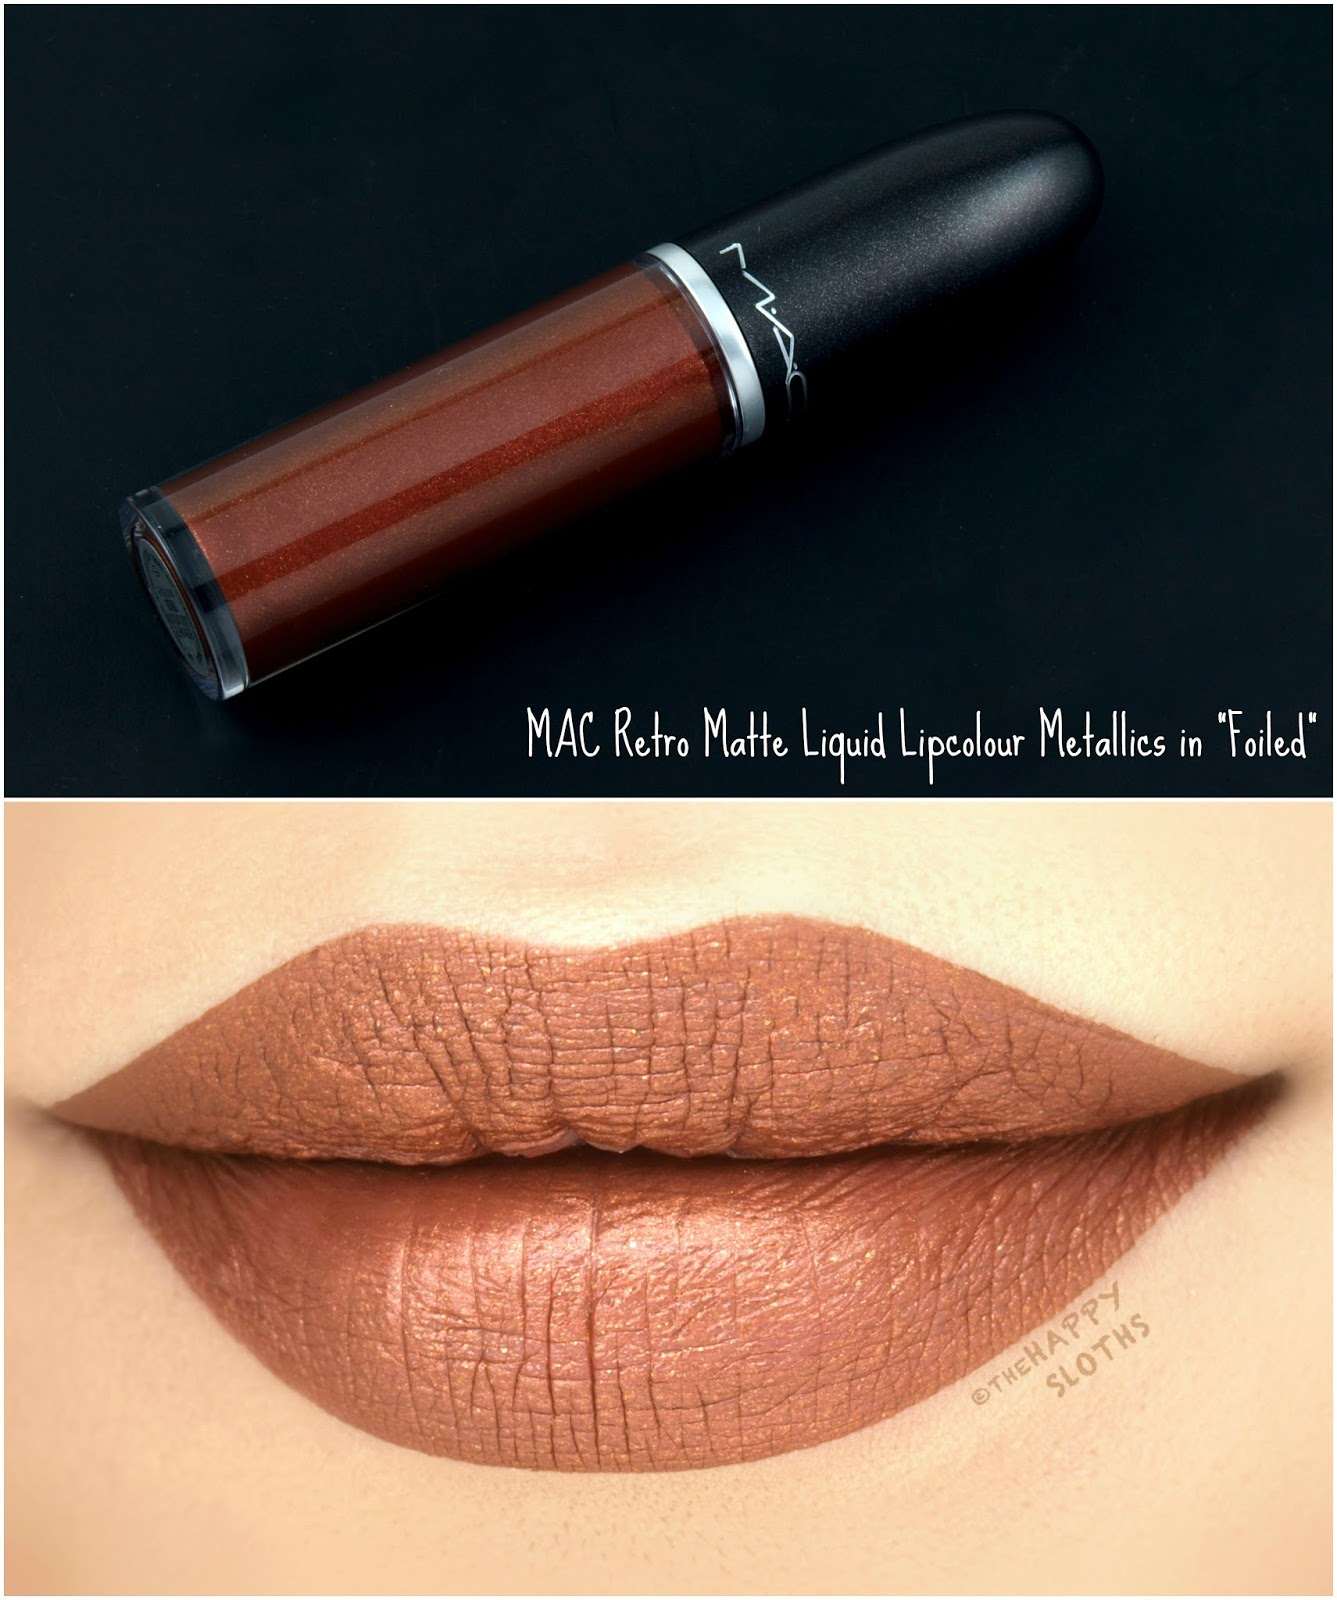 "MAC Retro Matte Liquid Lipcolor Metallics in ""Foiled"": Review and Swatches"